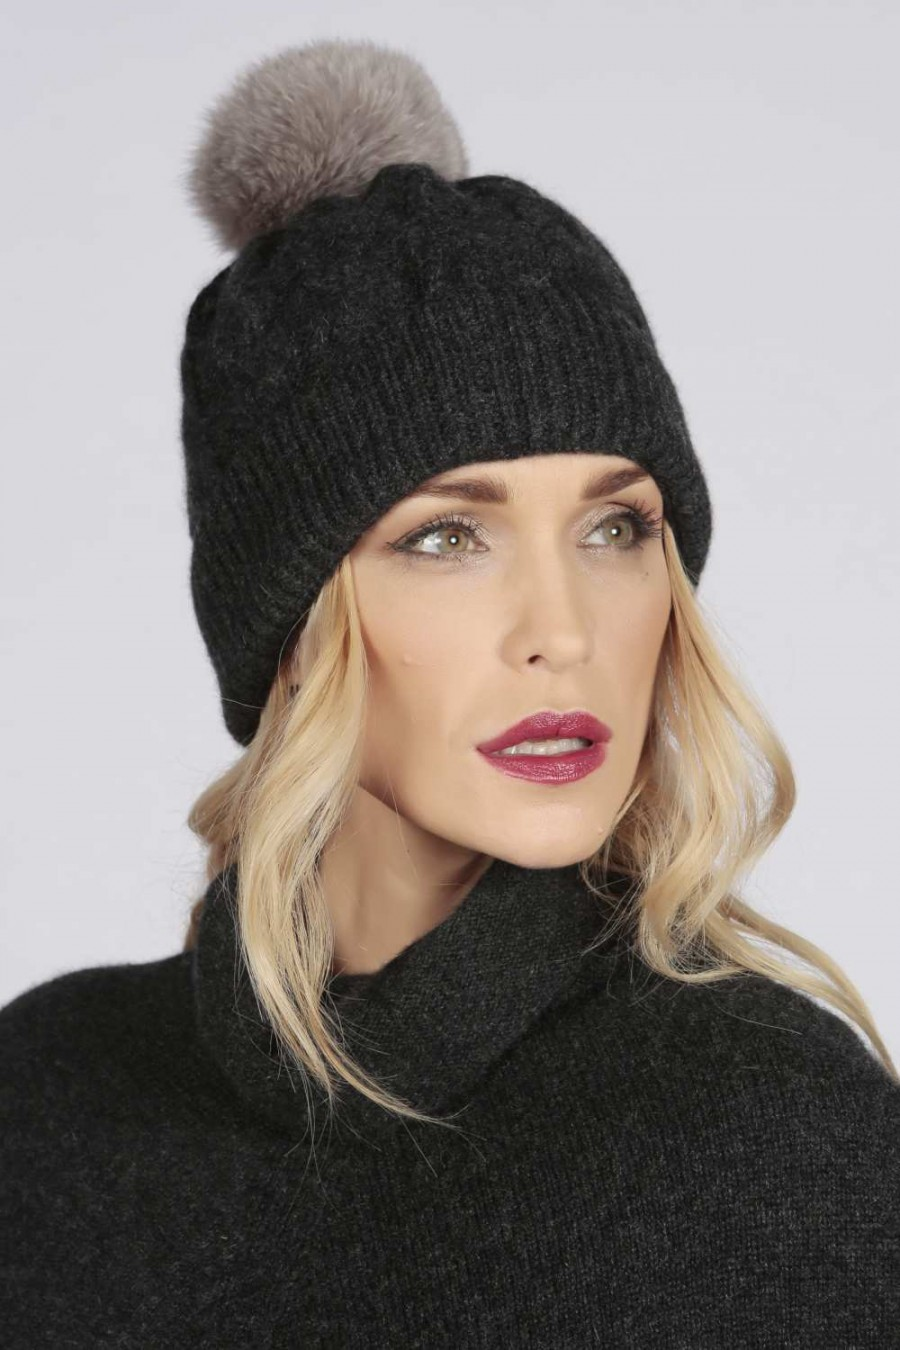 4b461d9b Charcoal Grey pure cashmere fur pom pom cable knit beanie hat | Italy in  Cashmere UK